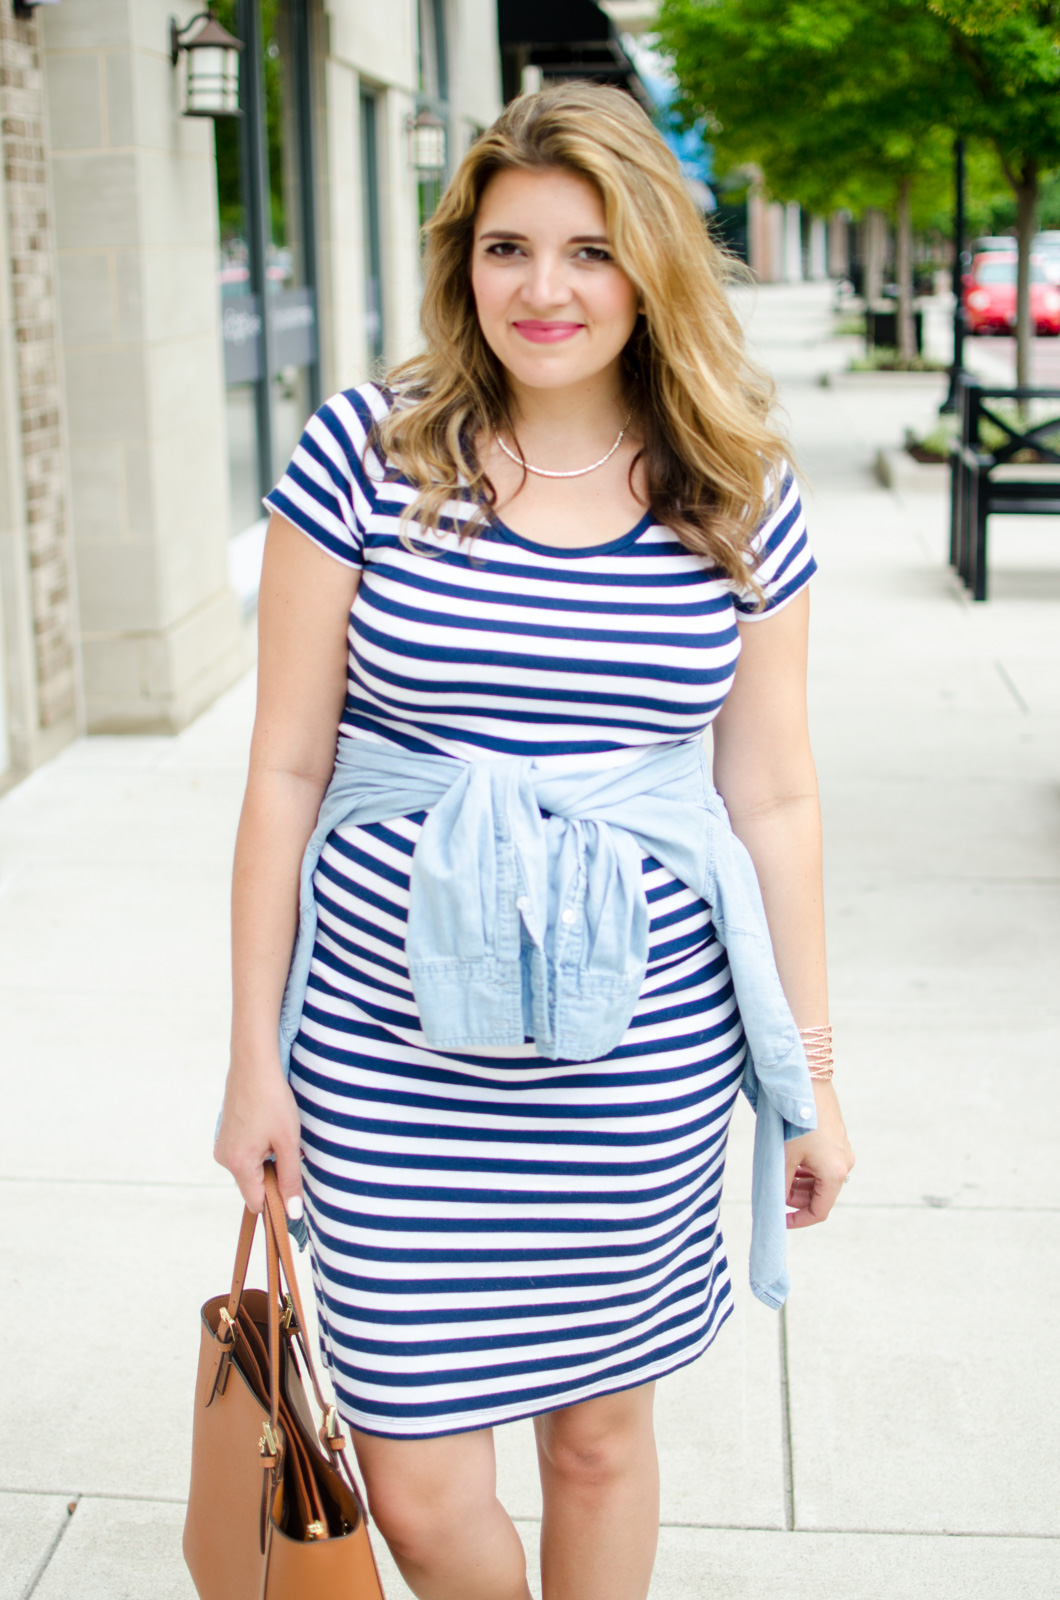 summer pregnancy red white and blue outfit | For more cute summer pregnancy outfits, head to bylaurenm.com